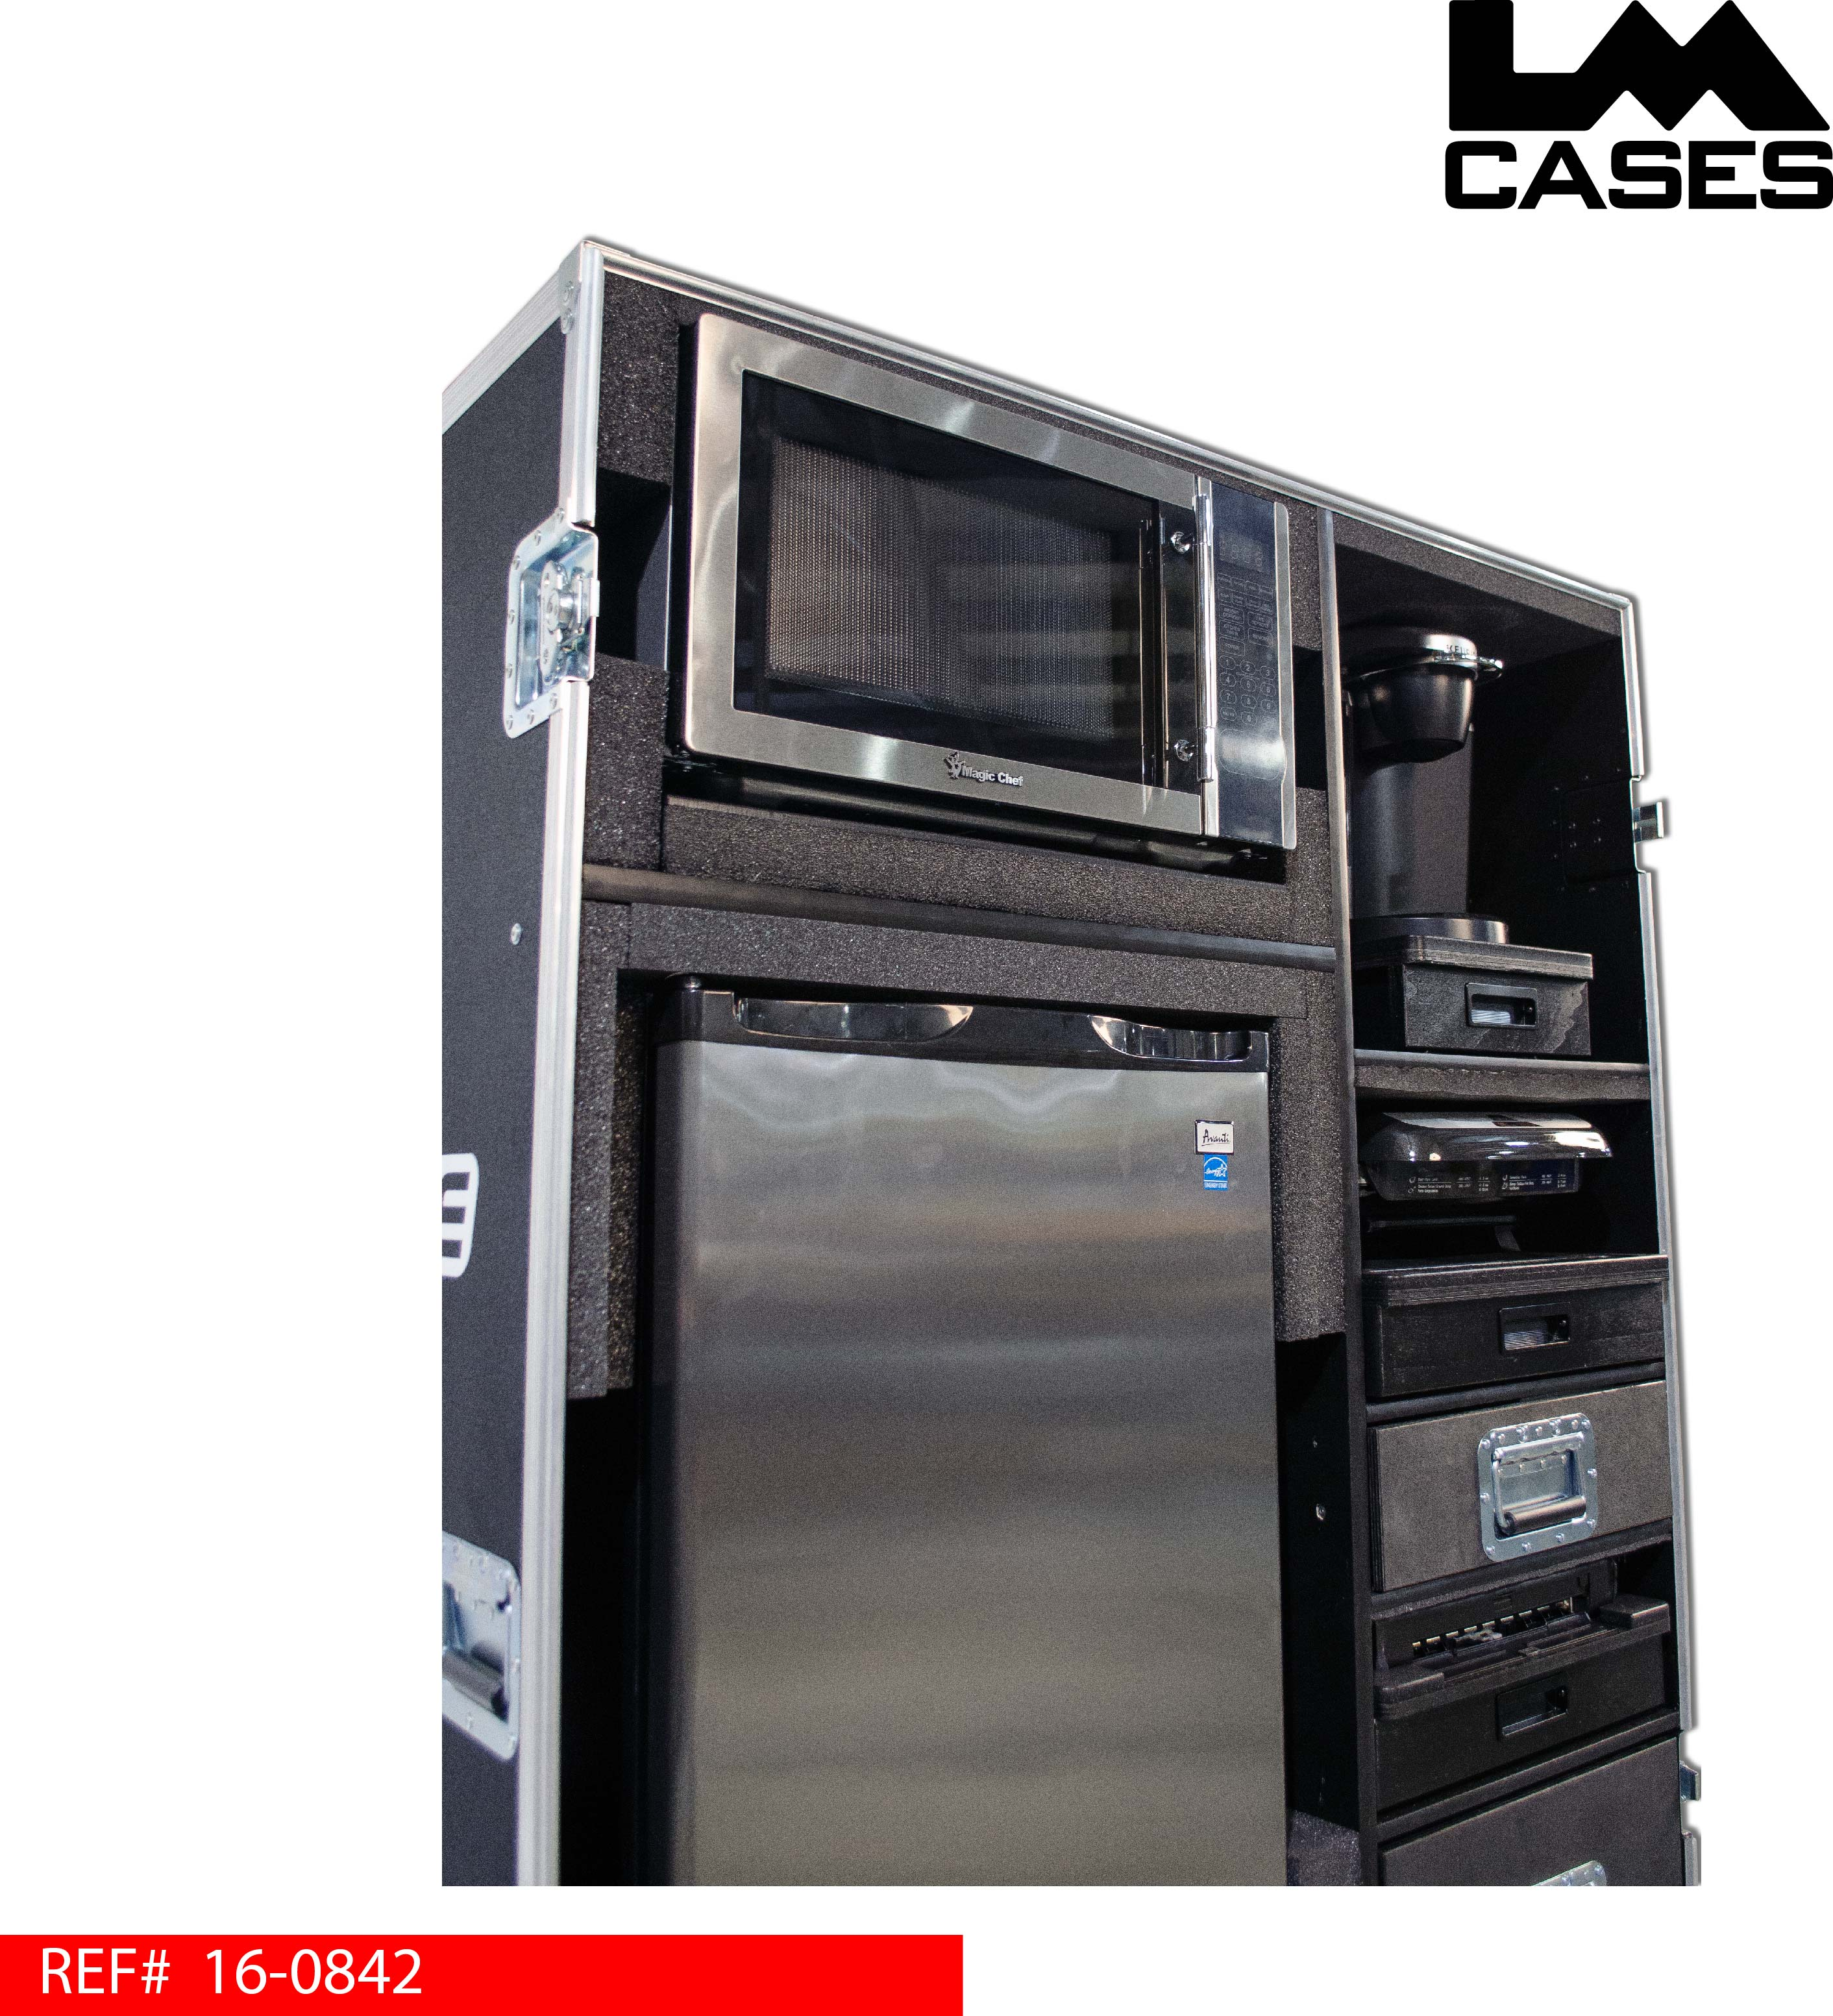 This Case Was Design For Q2Cue To Be A Mobile Kitchen For Touring  Productions. The Case Features A Refrigerator, Microwave, Commercial Grade  Keurig Beverage ...